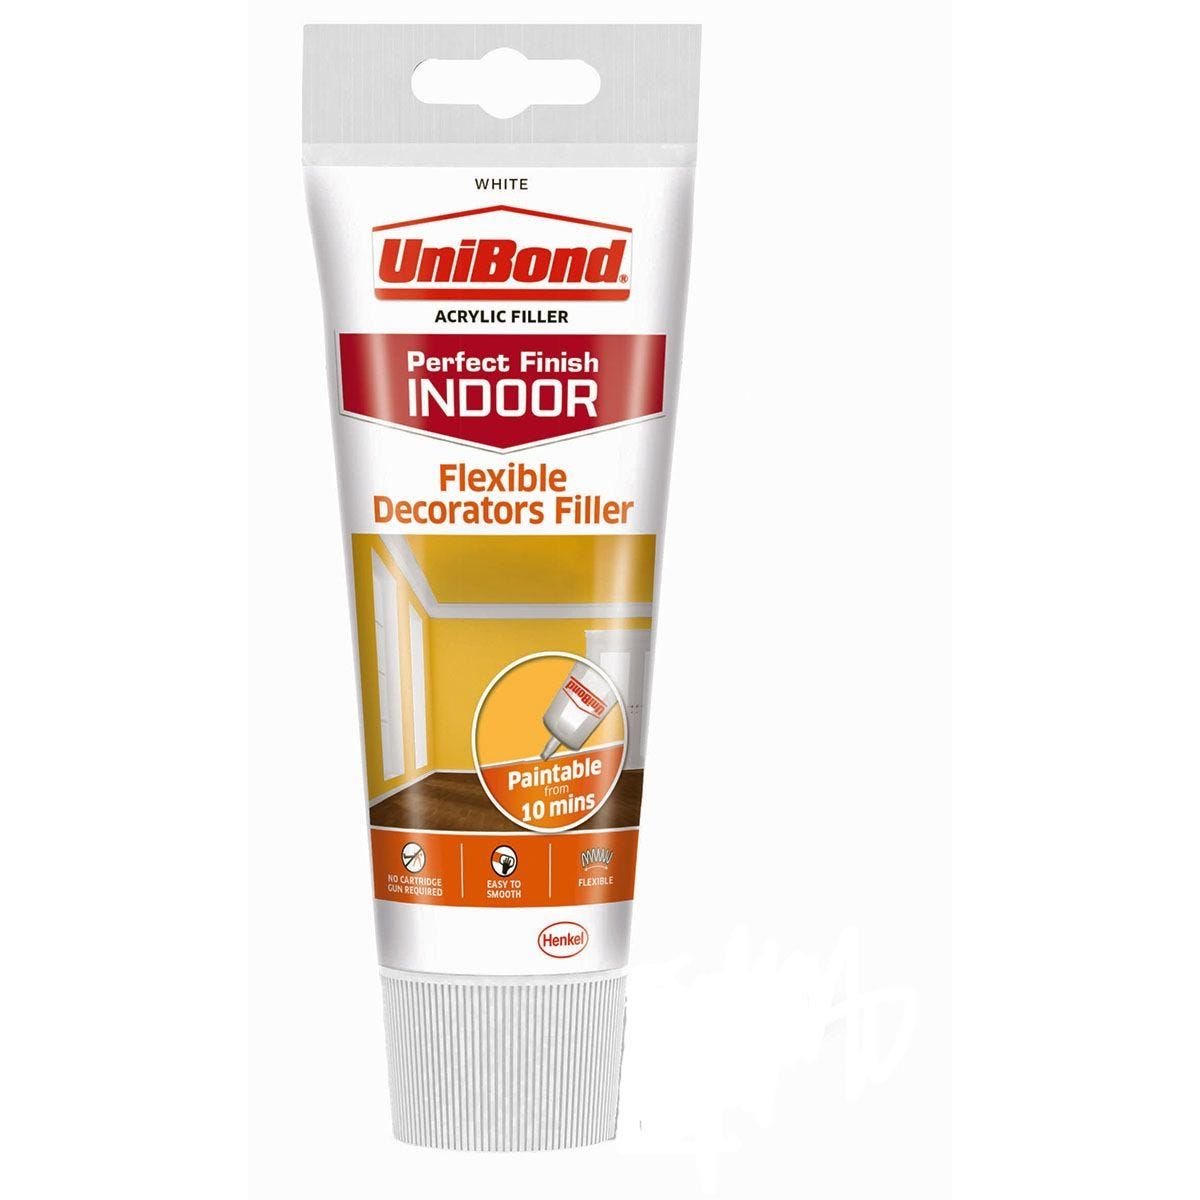 UniBond Flexible Decorators Filler Indoor Sealant - White